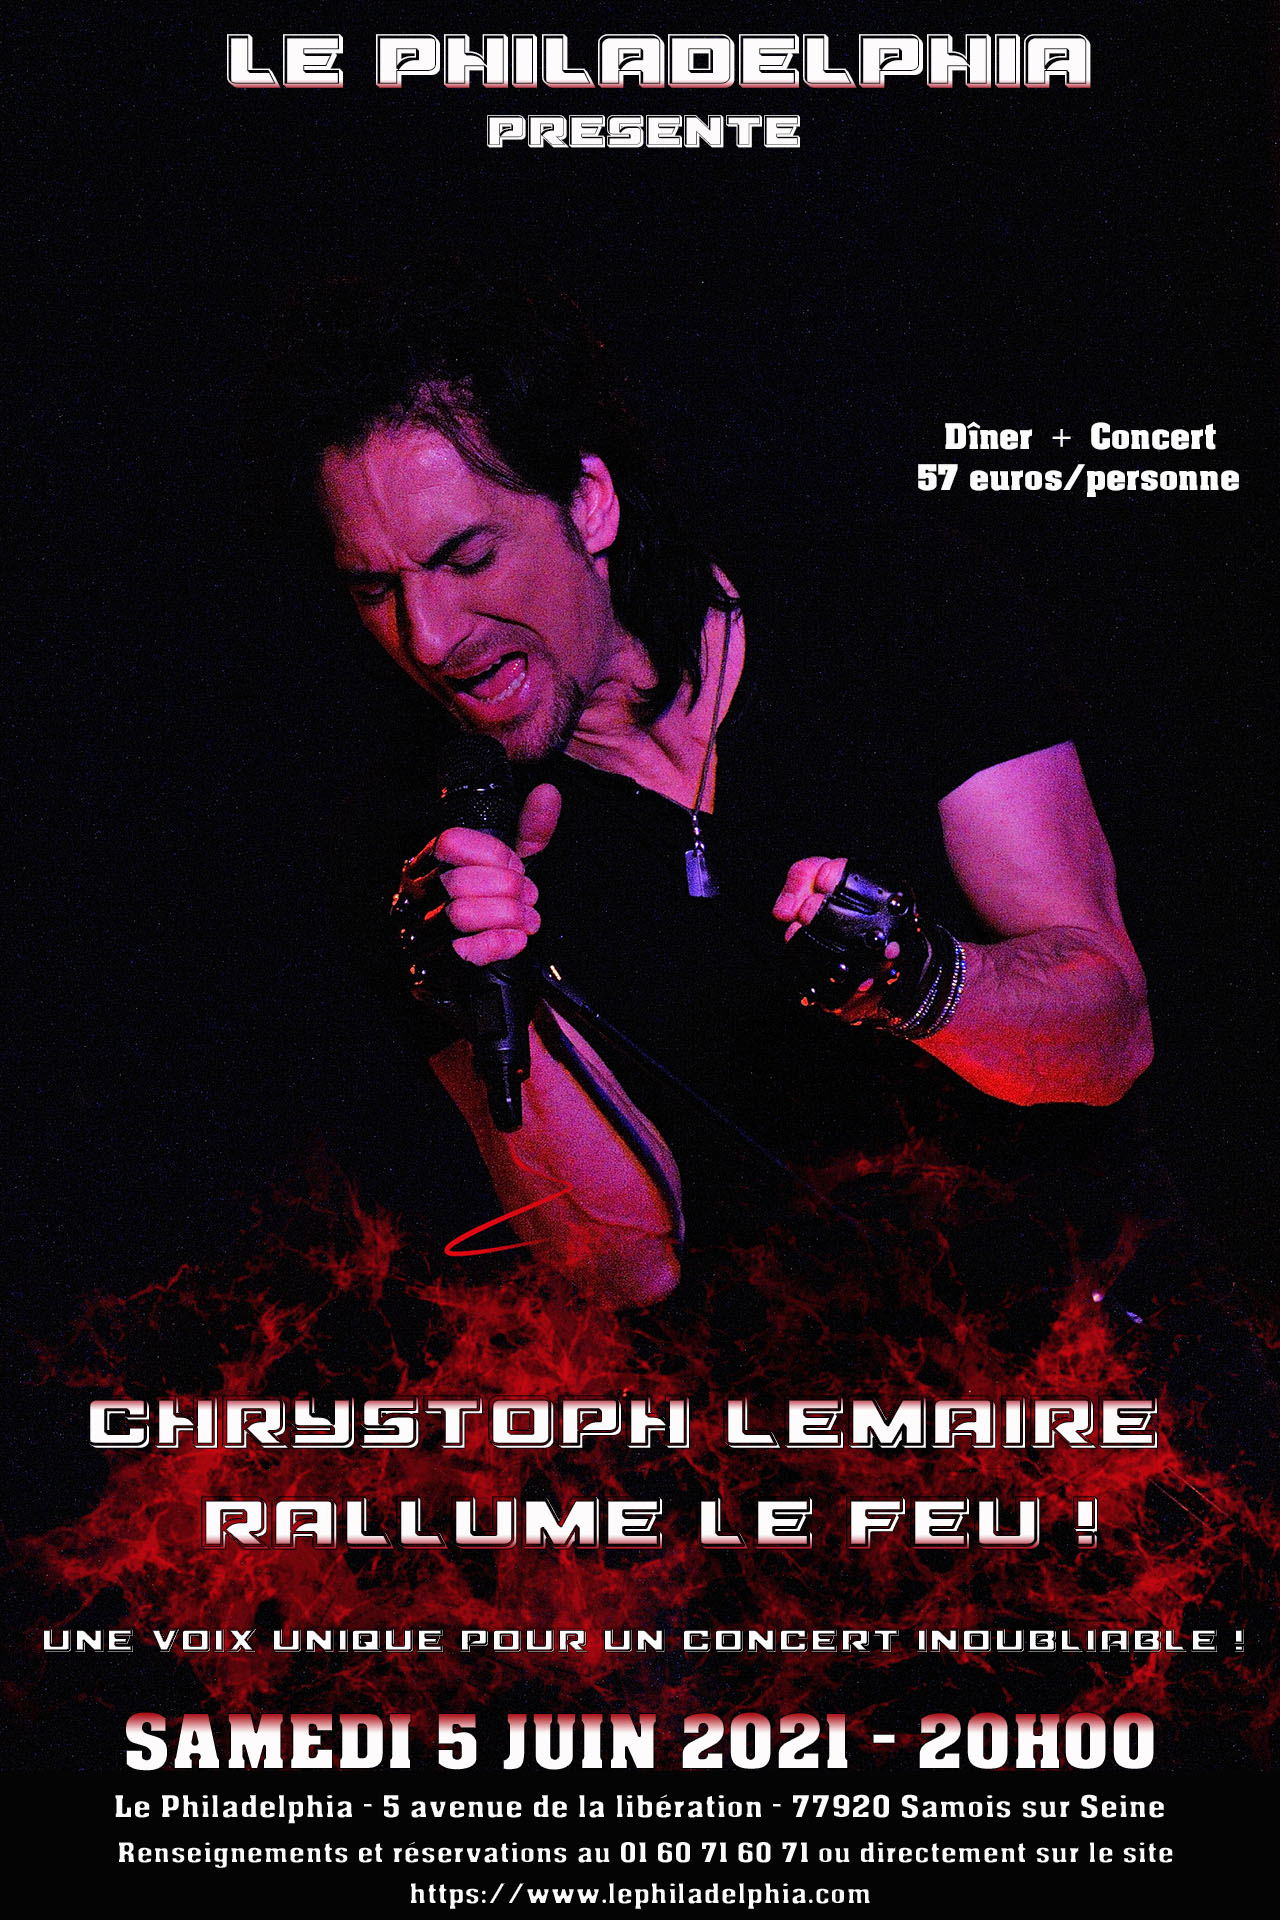 Chrystoph Lemaire rallume le feu !